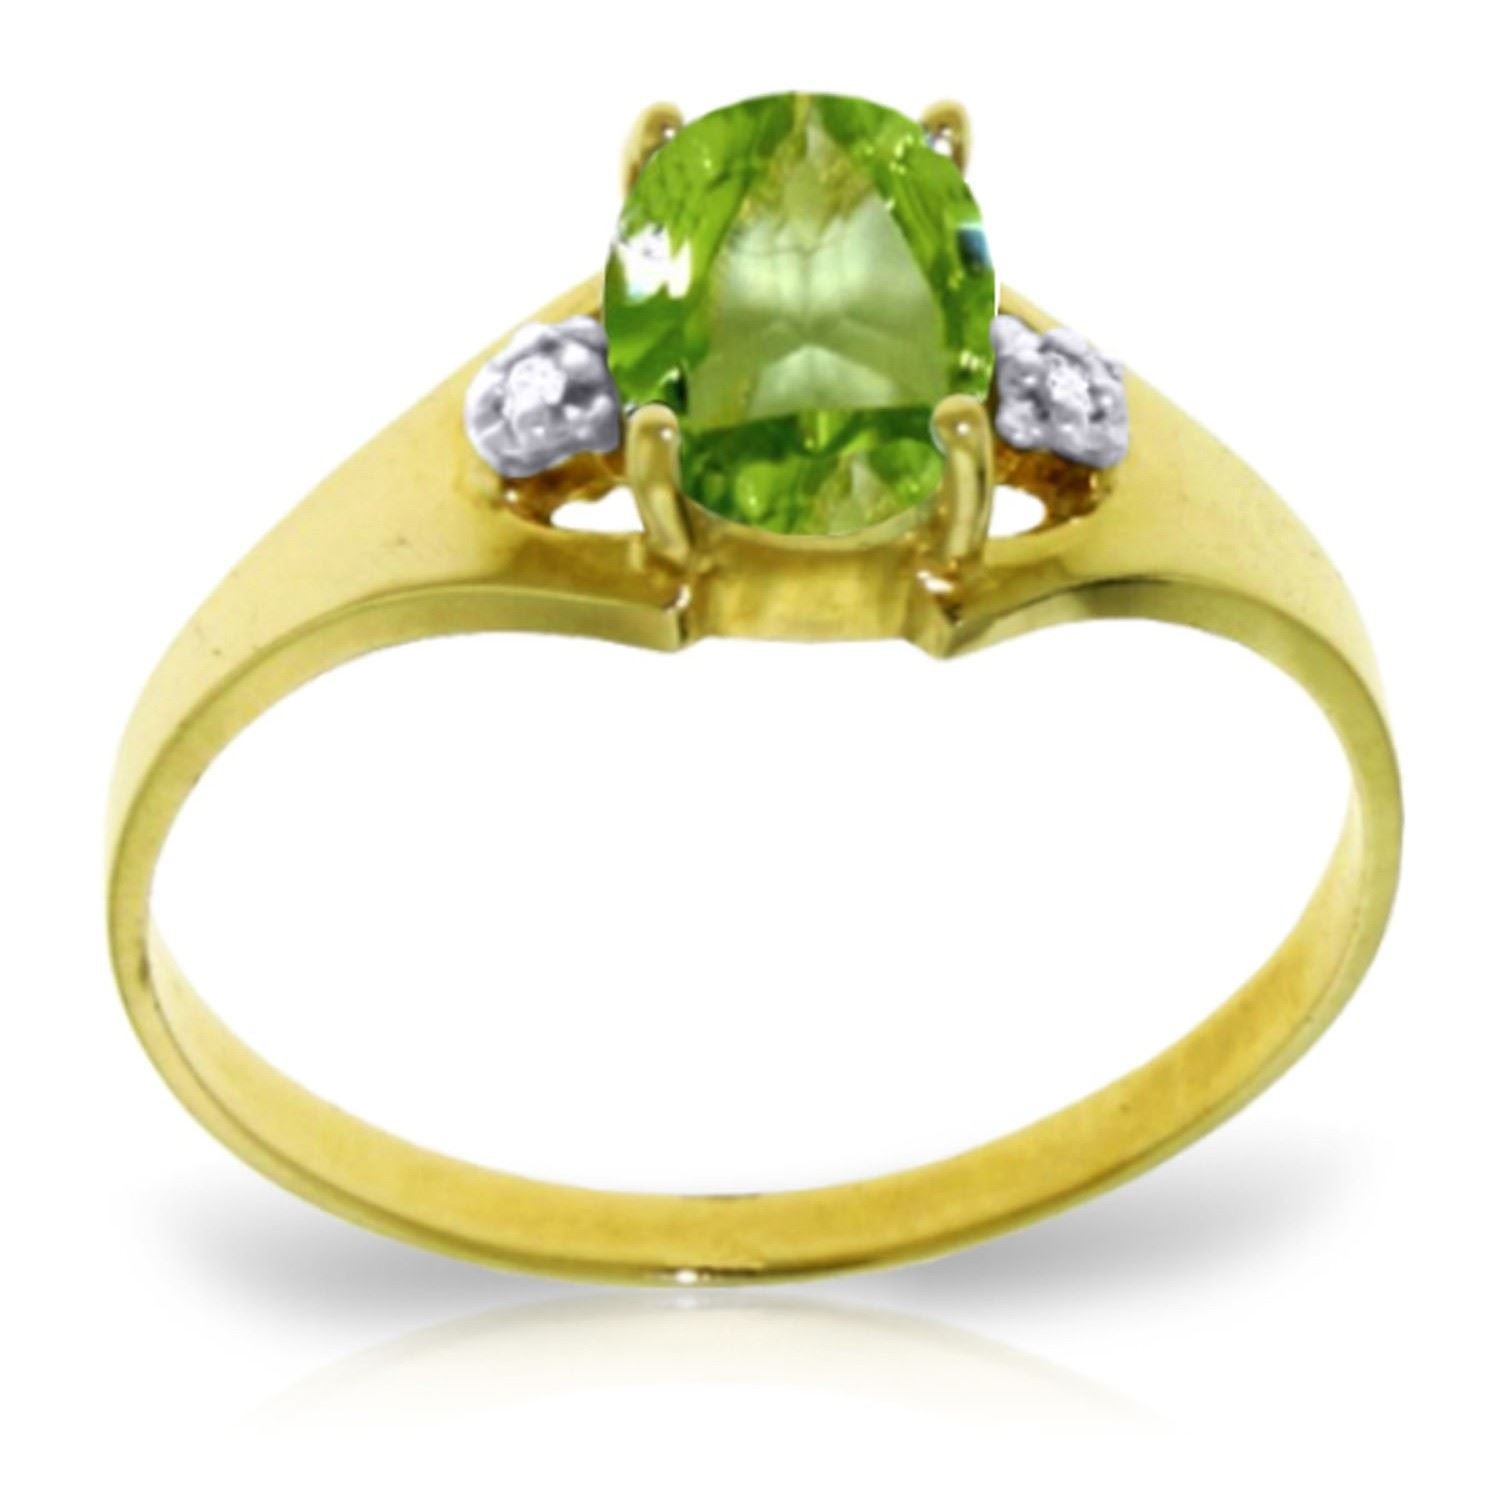 ALARRI 0.76 CTW 14K Solid Gold Motions Of Love Peridot Diamond Ring With Ring Size 8